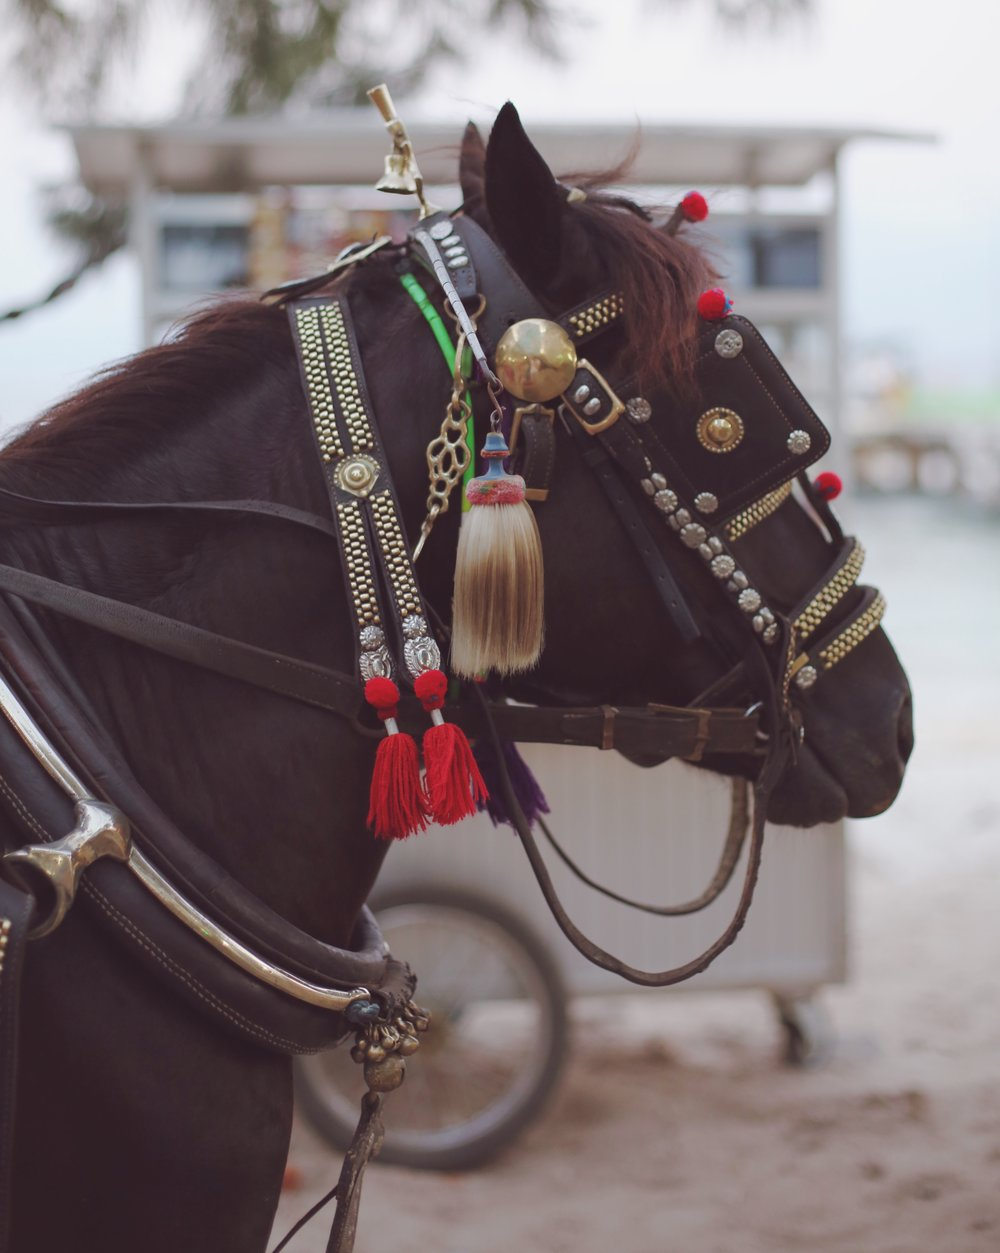 Horse, Gili Islands, Indonesia - Hannah Gabrielle More Travel Photography